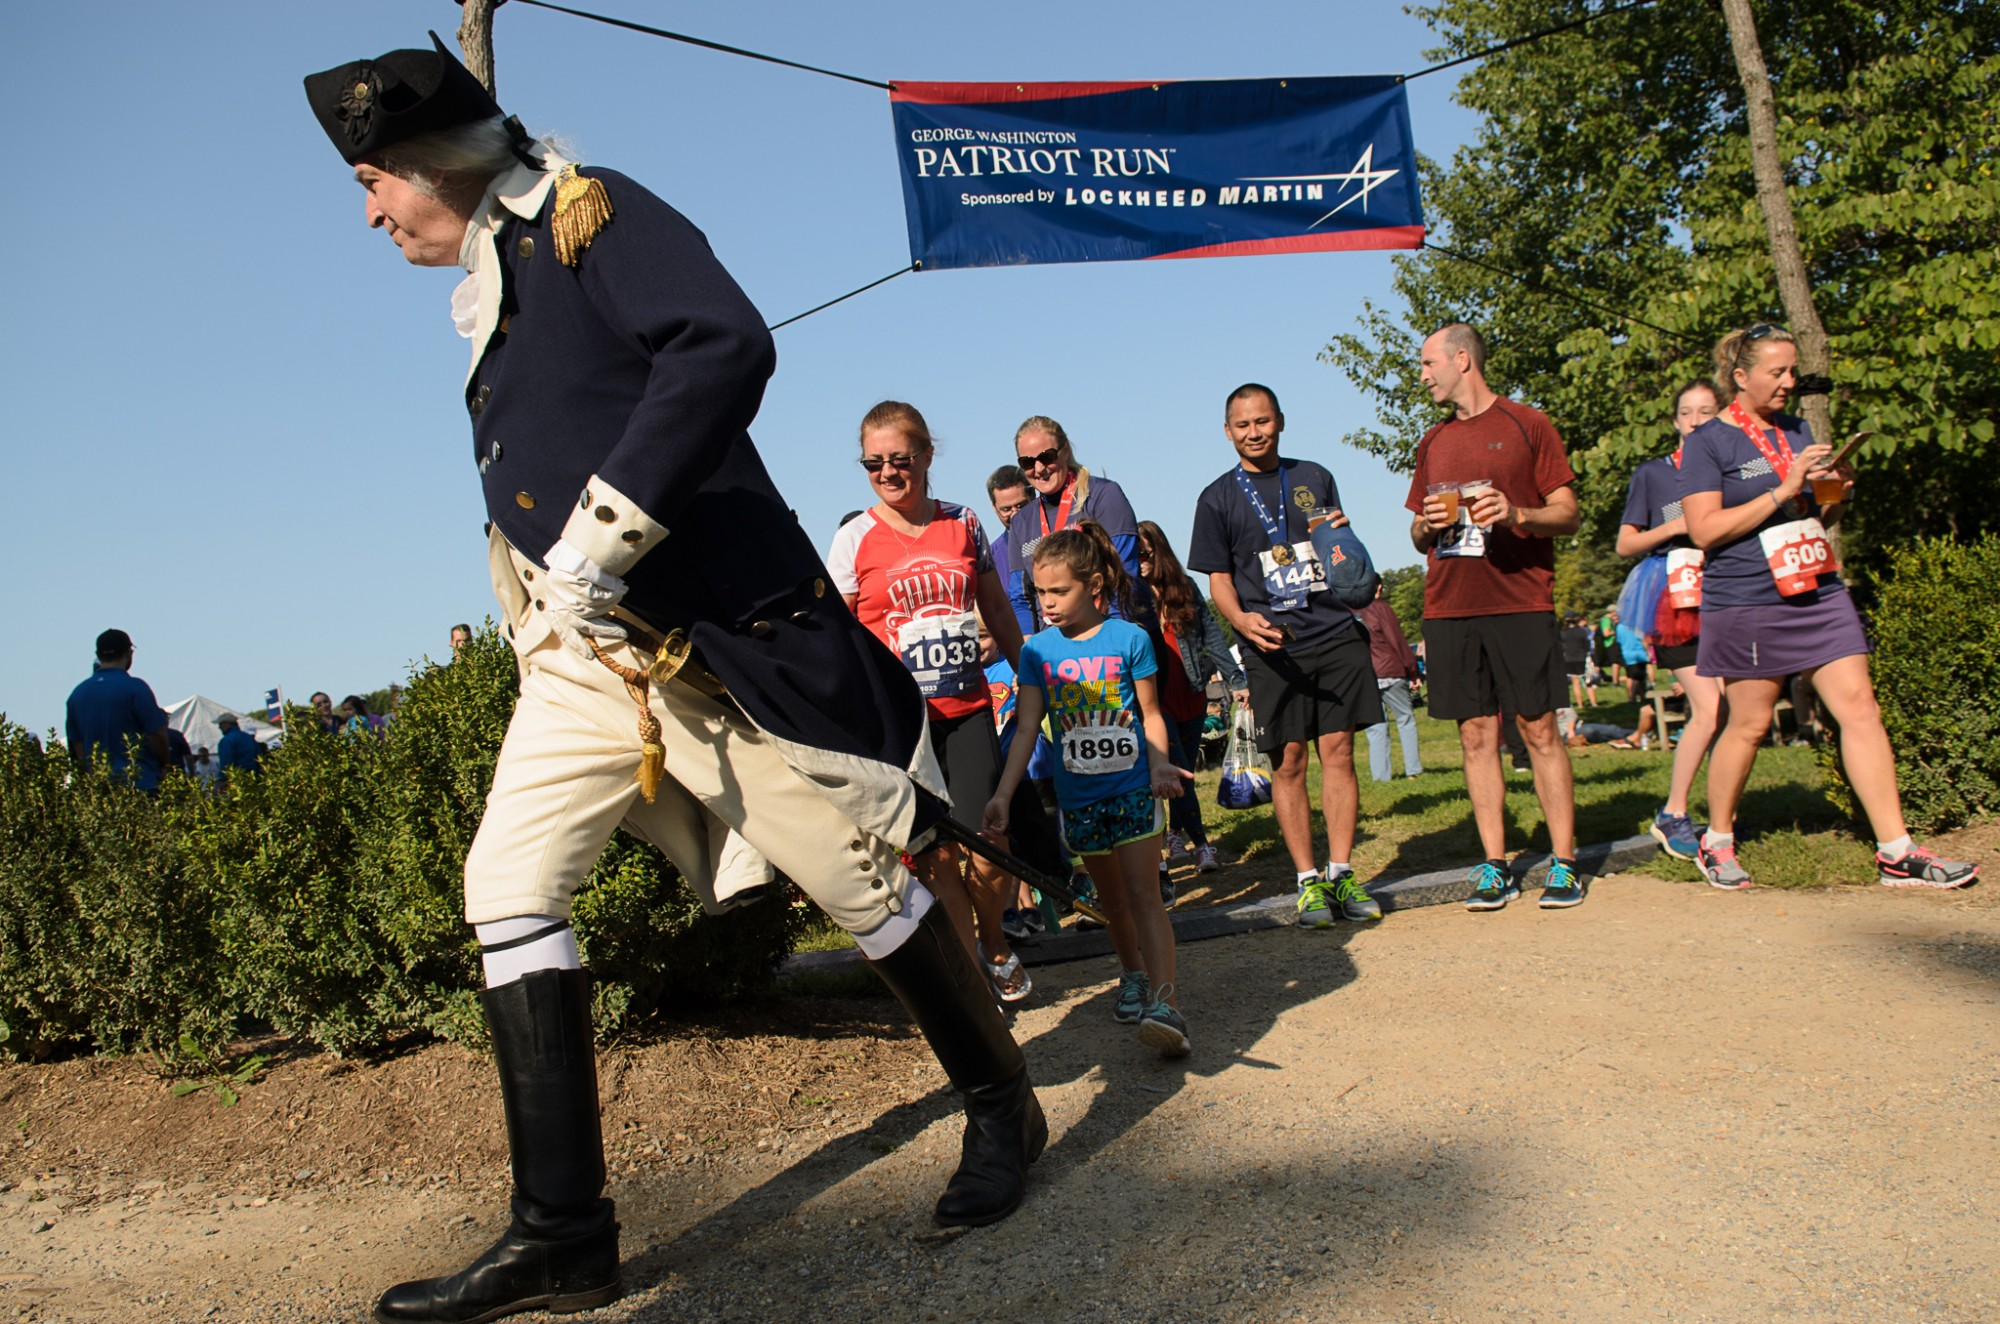 George Washington, runners, race